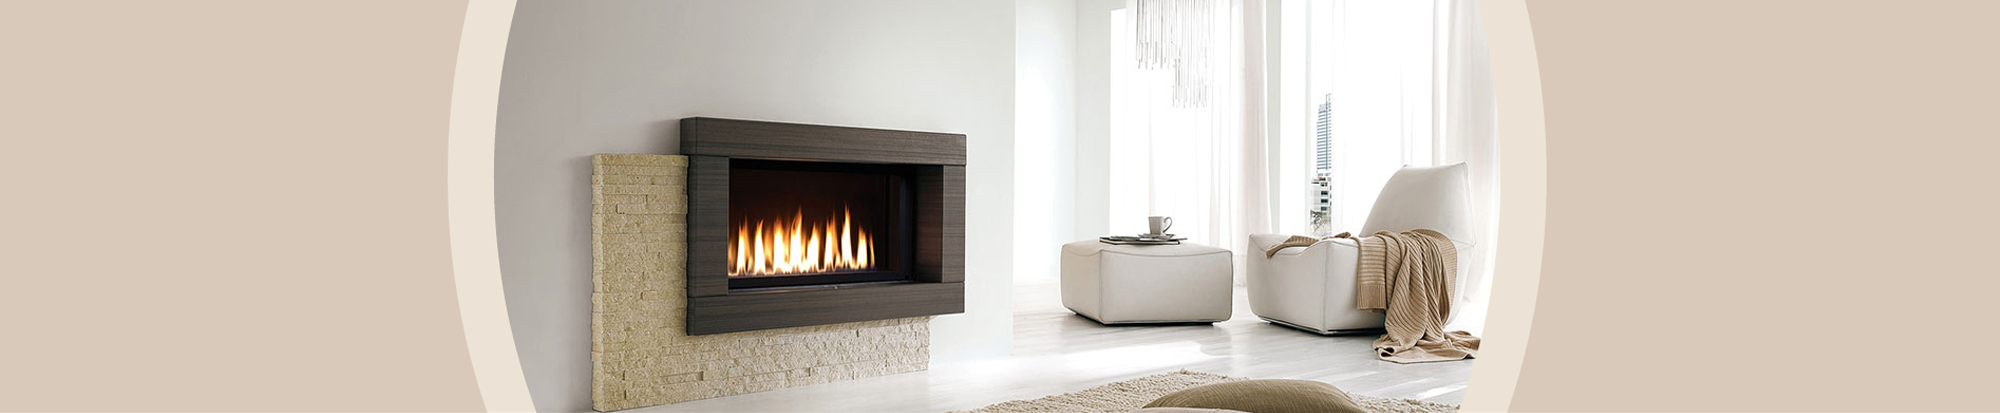 fireplaces-slider2